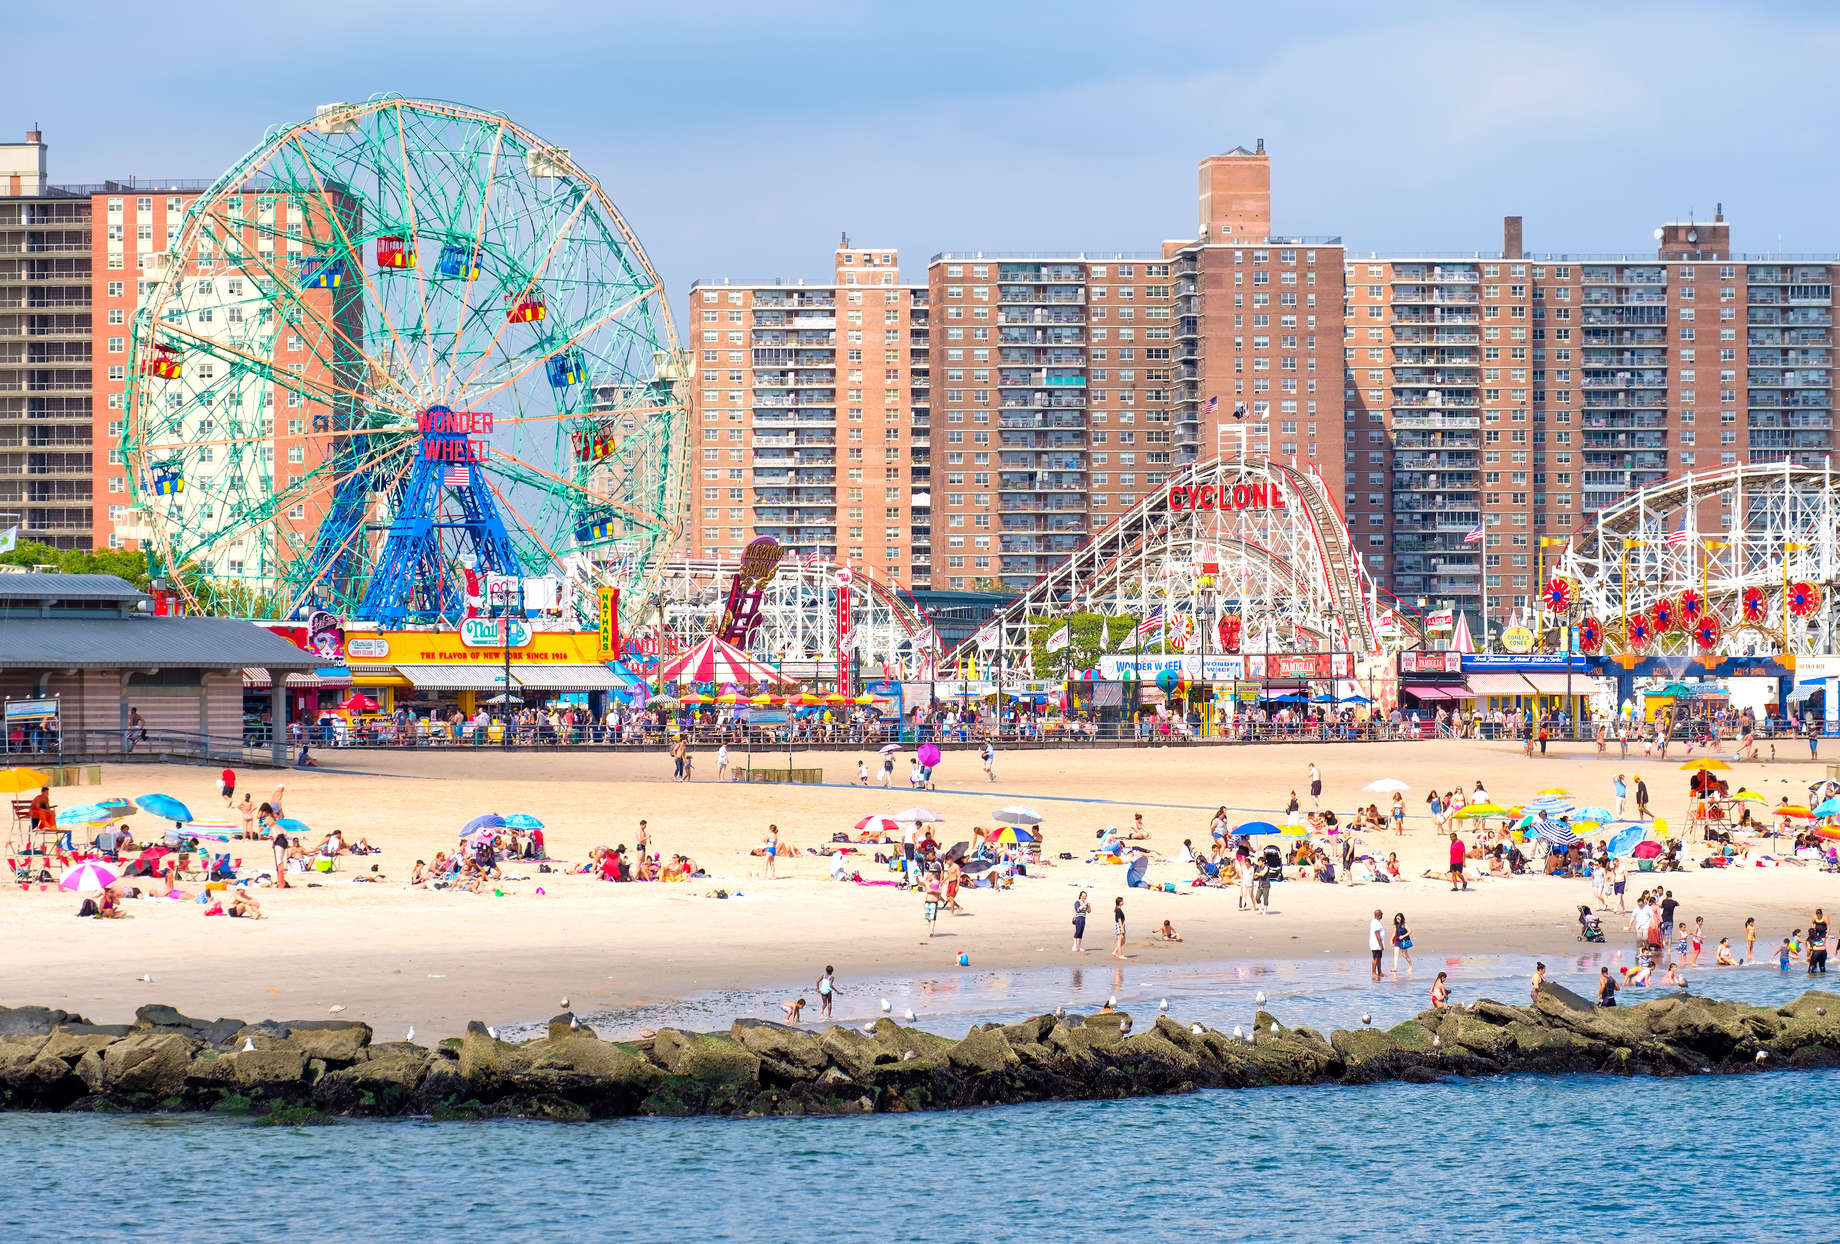 Things to Do in Coney Island: Best